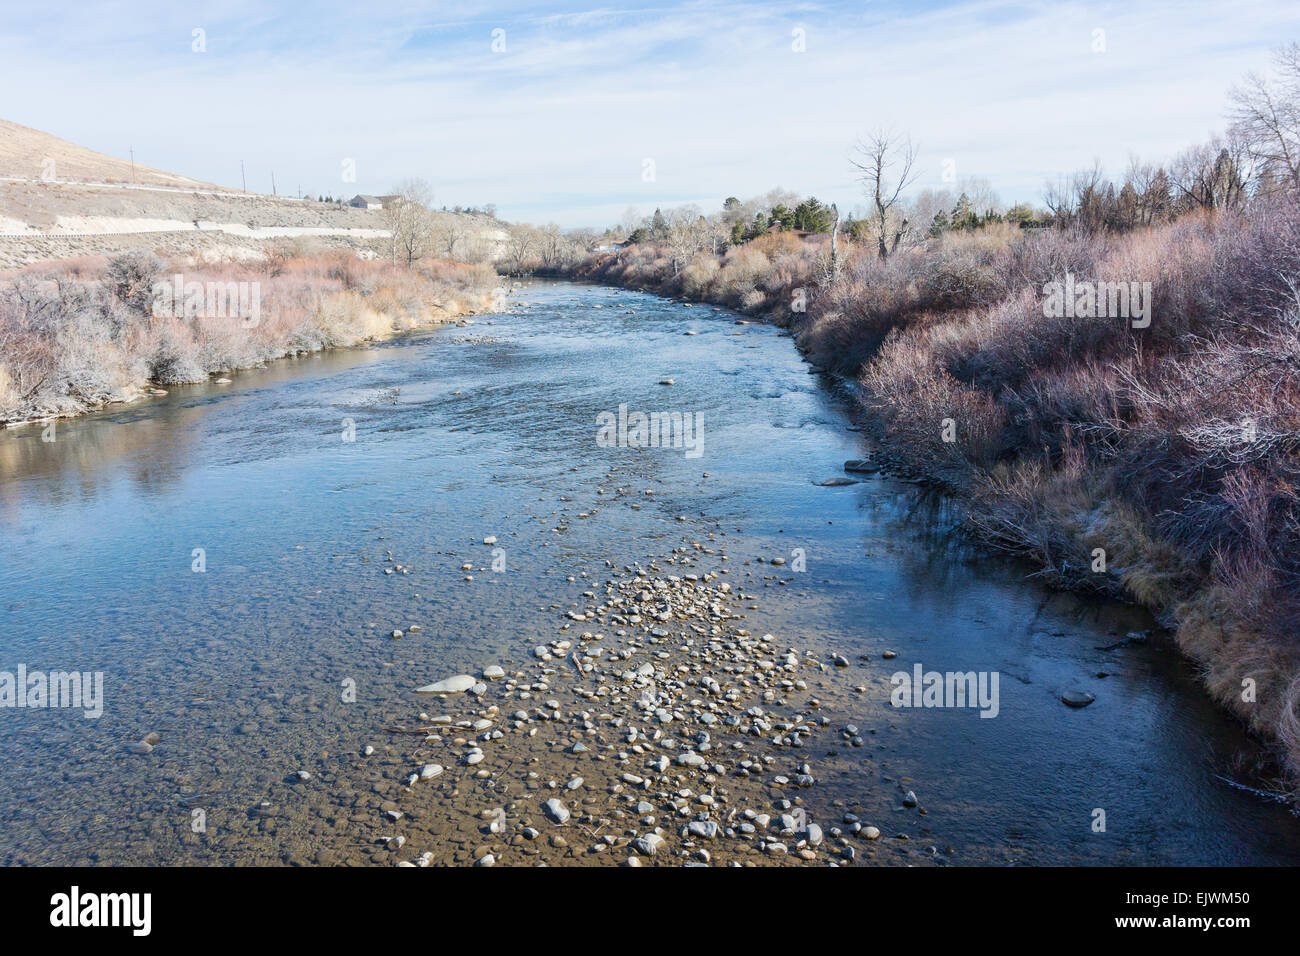 The Truckee River in winter, Reno, Nevada - Stock Image